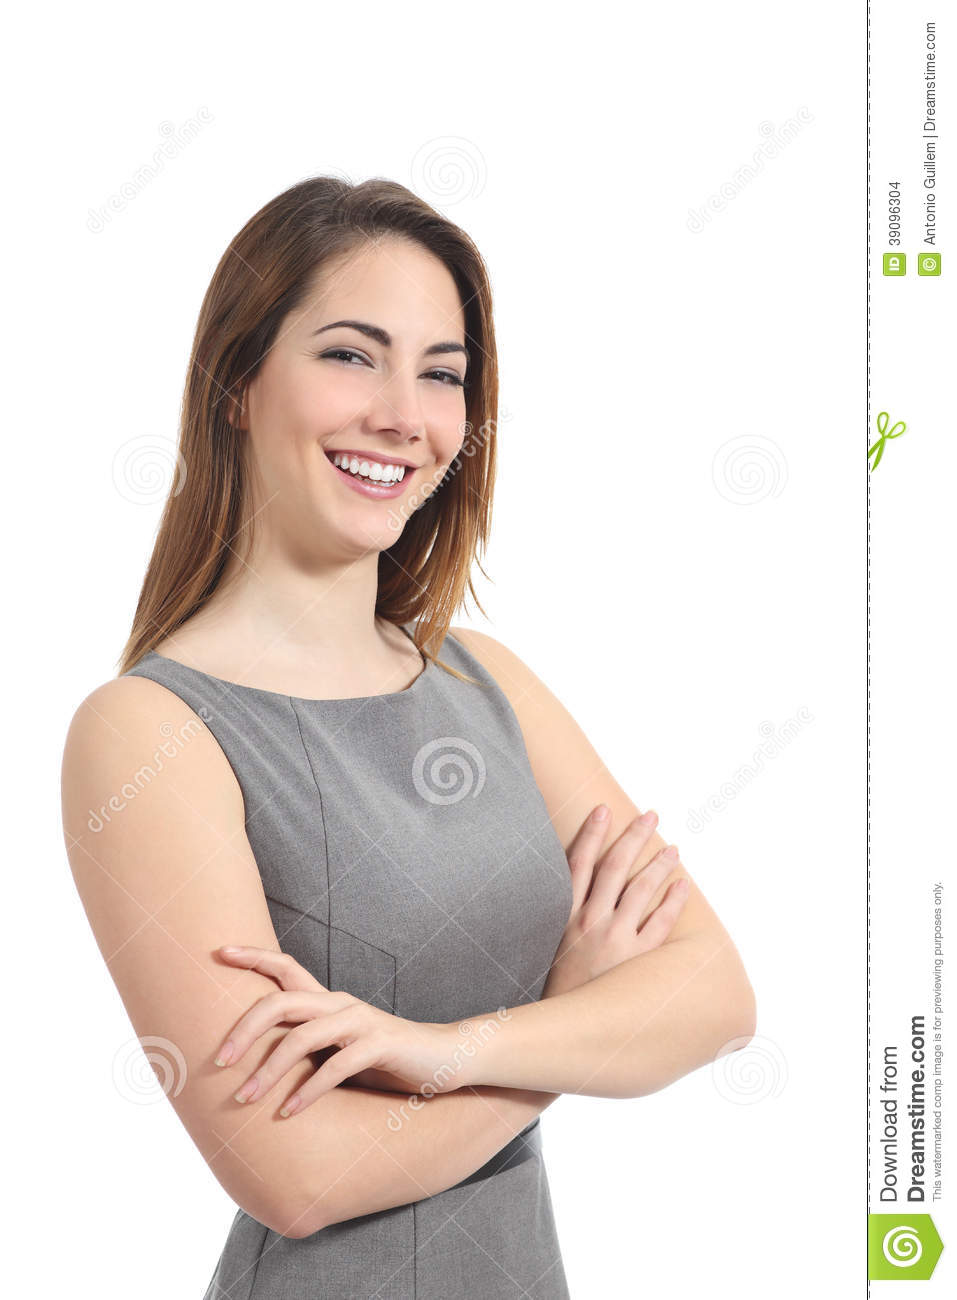 Business woman posing with a perfect smile